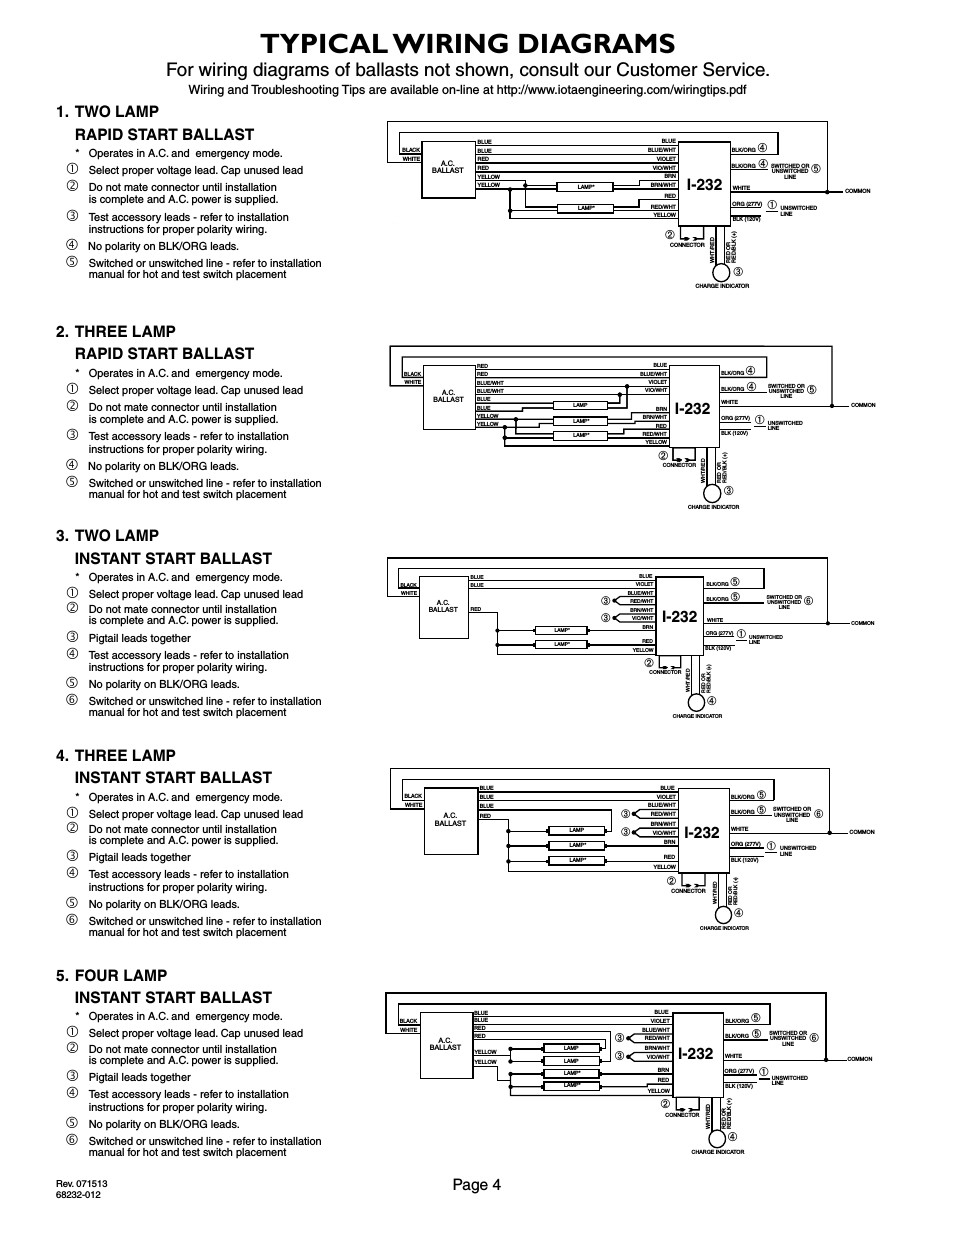 iota emergency ballast wiring diagram Collection-iota emergency ballast wiring diagram Download Emergency Ballast Wiring 4 p DOWNLOAD Wiring Diagram Detail Name iota emergency ballast 2-o